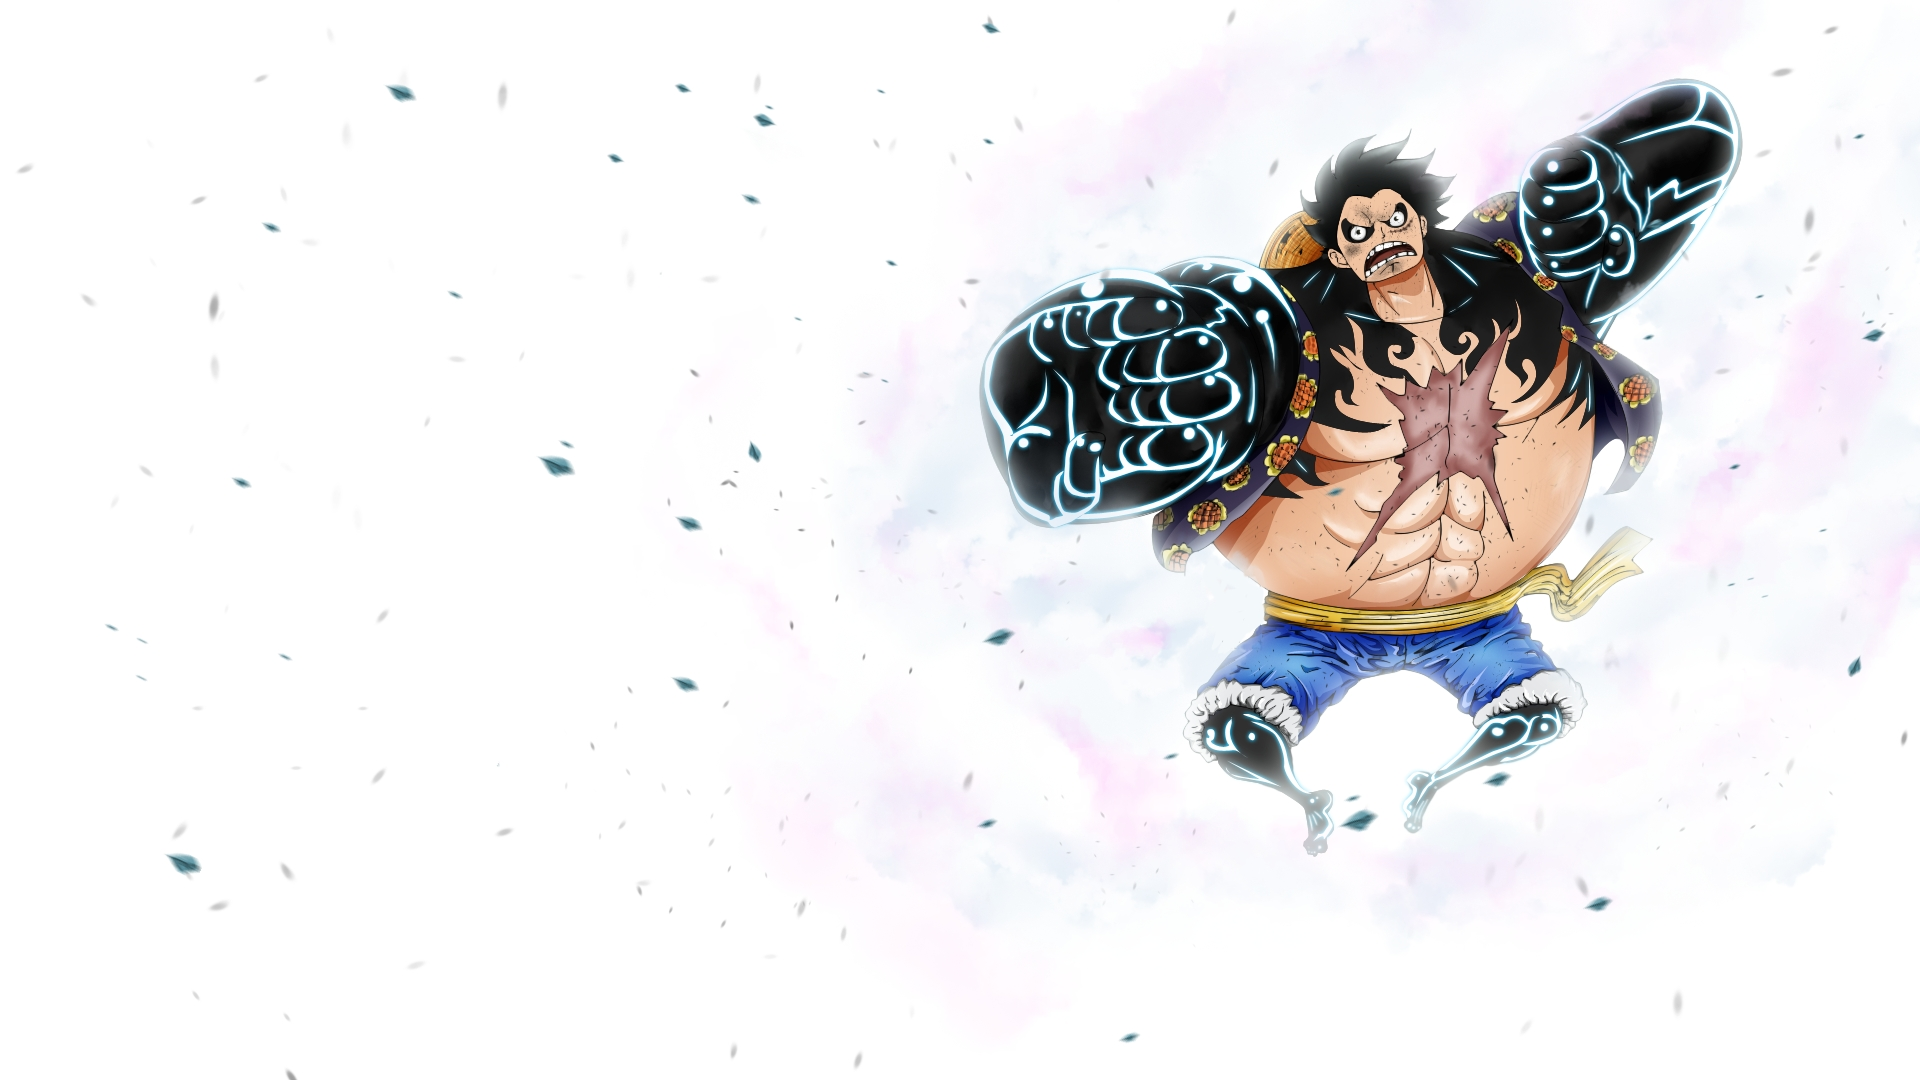 luffy gear 4 full hd wallpaper and background image | 1920x1080 | id